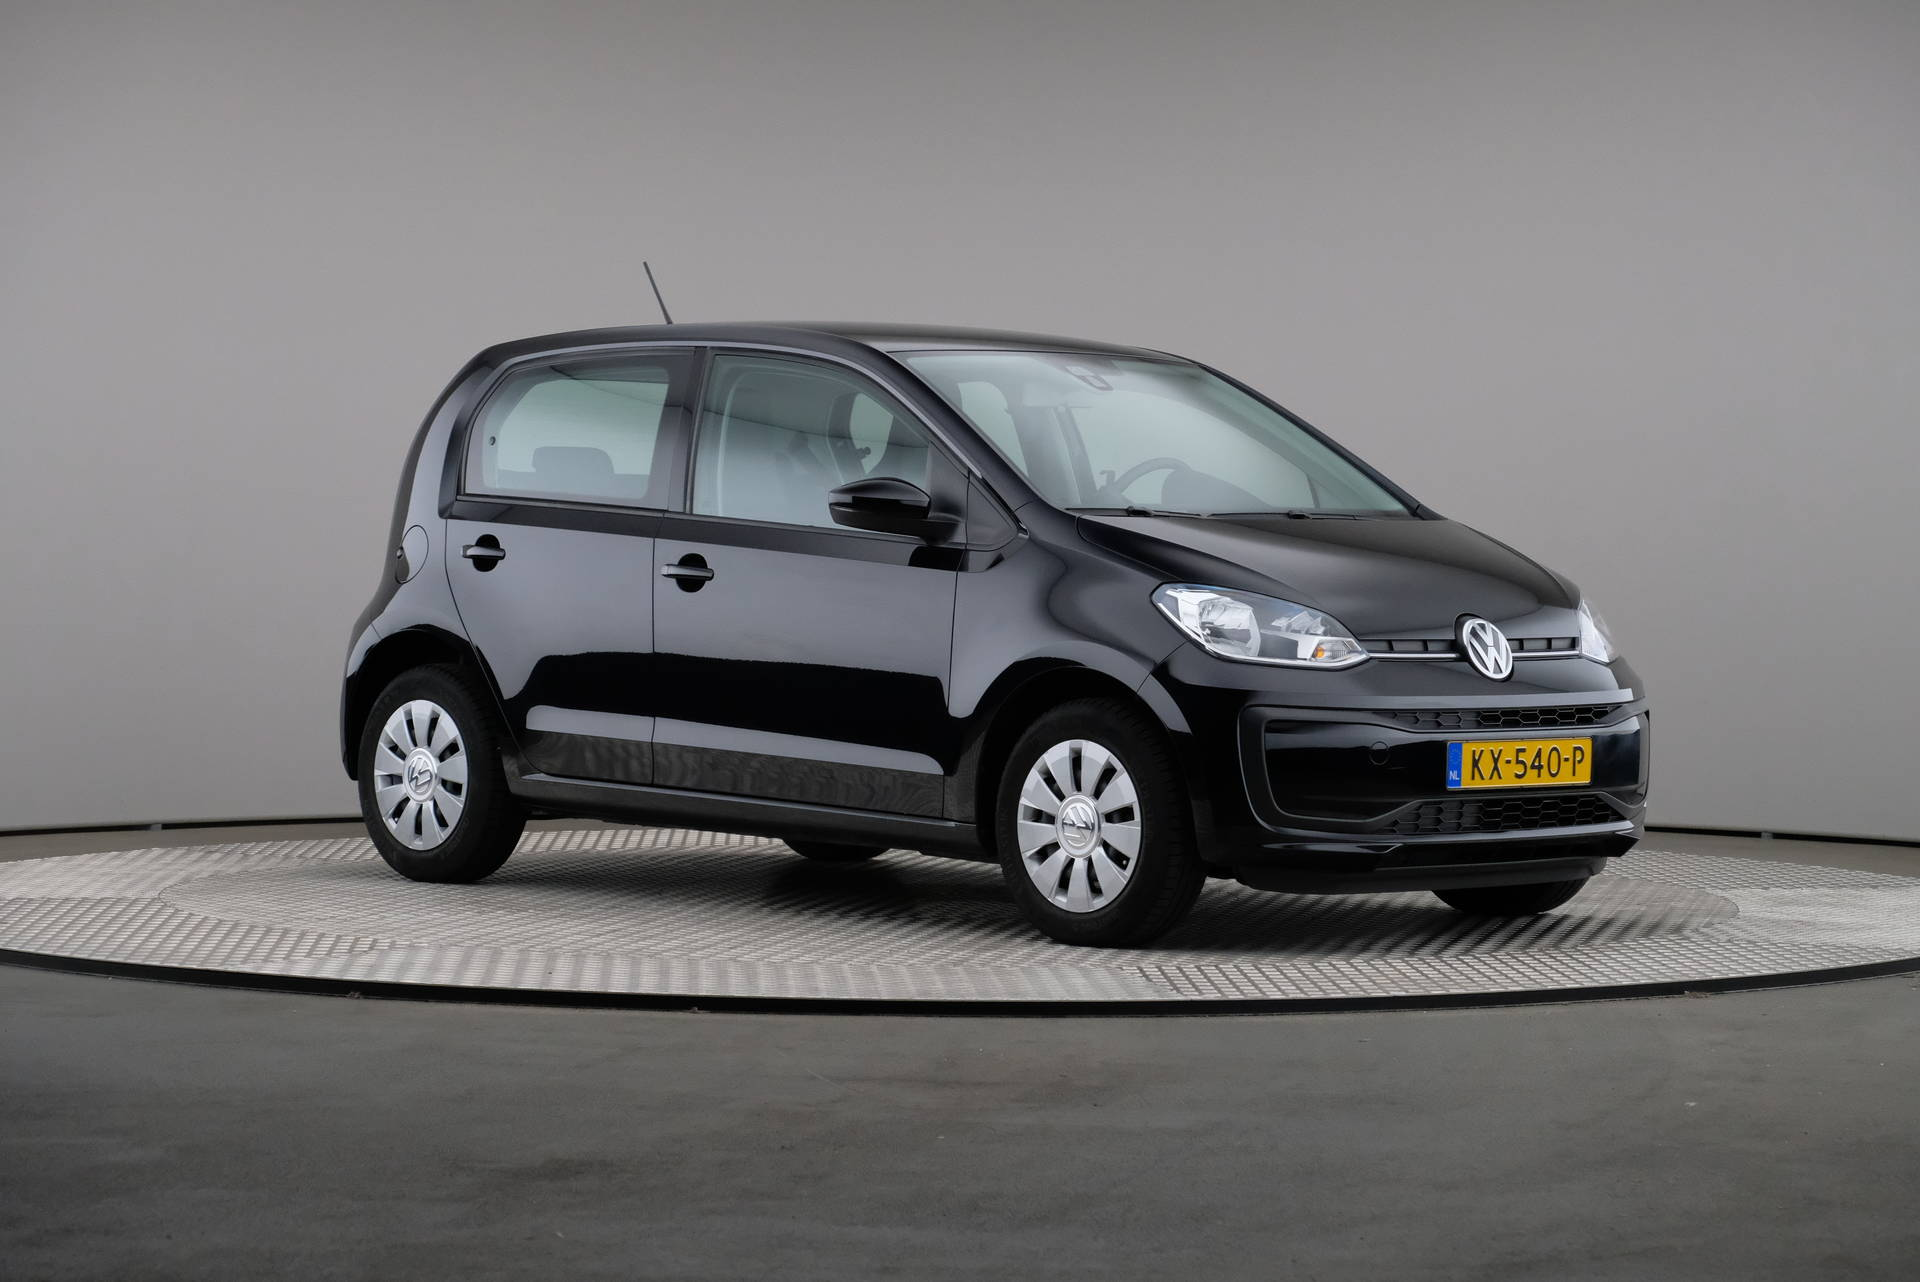 Volkswagen up! 1.0 44kW Move up! BlueMotion Technology, Airconditioning, 360-image28